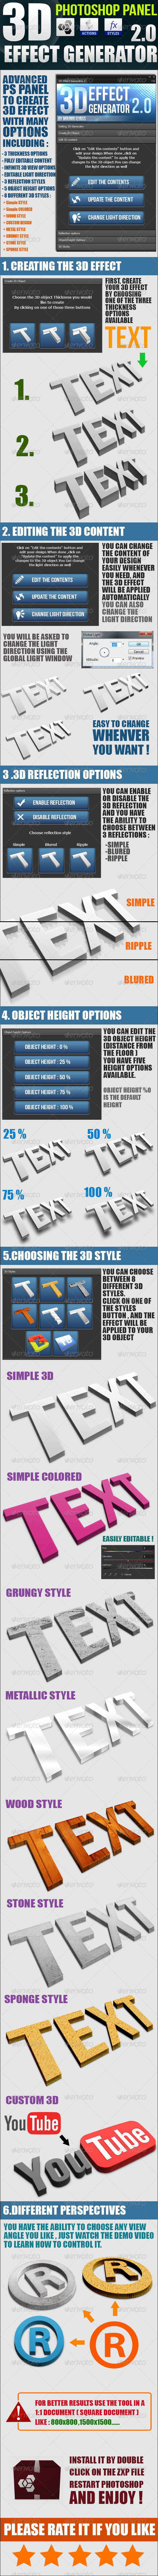 GraphicRiver 3D Effect Generator 2.0 Photoshop Panel & Actions 6469937